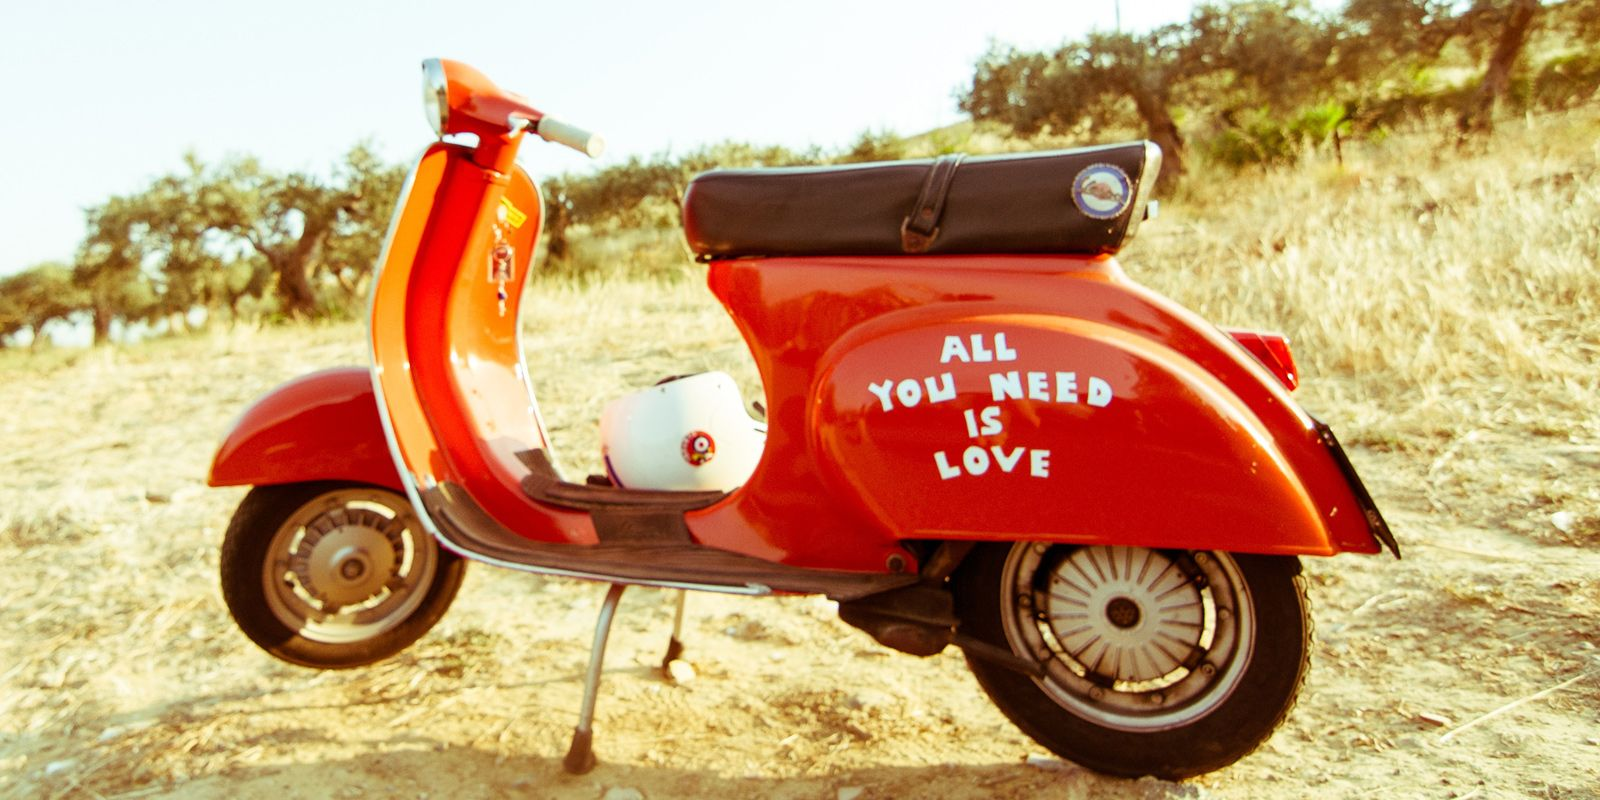 Vintage Vespa with All You Need Is Love on side photo by Davide Ragusa.